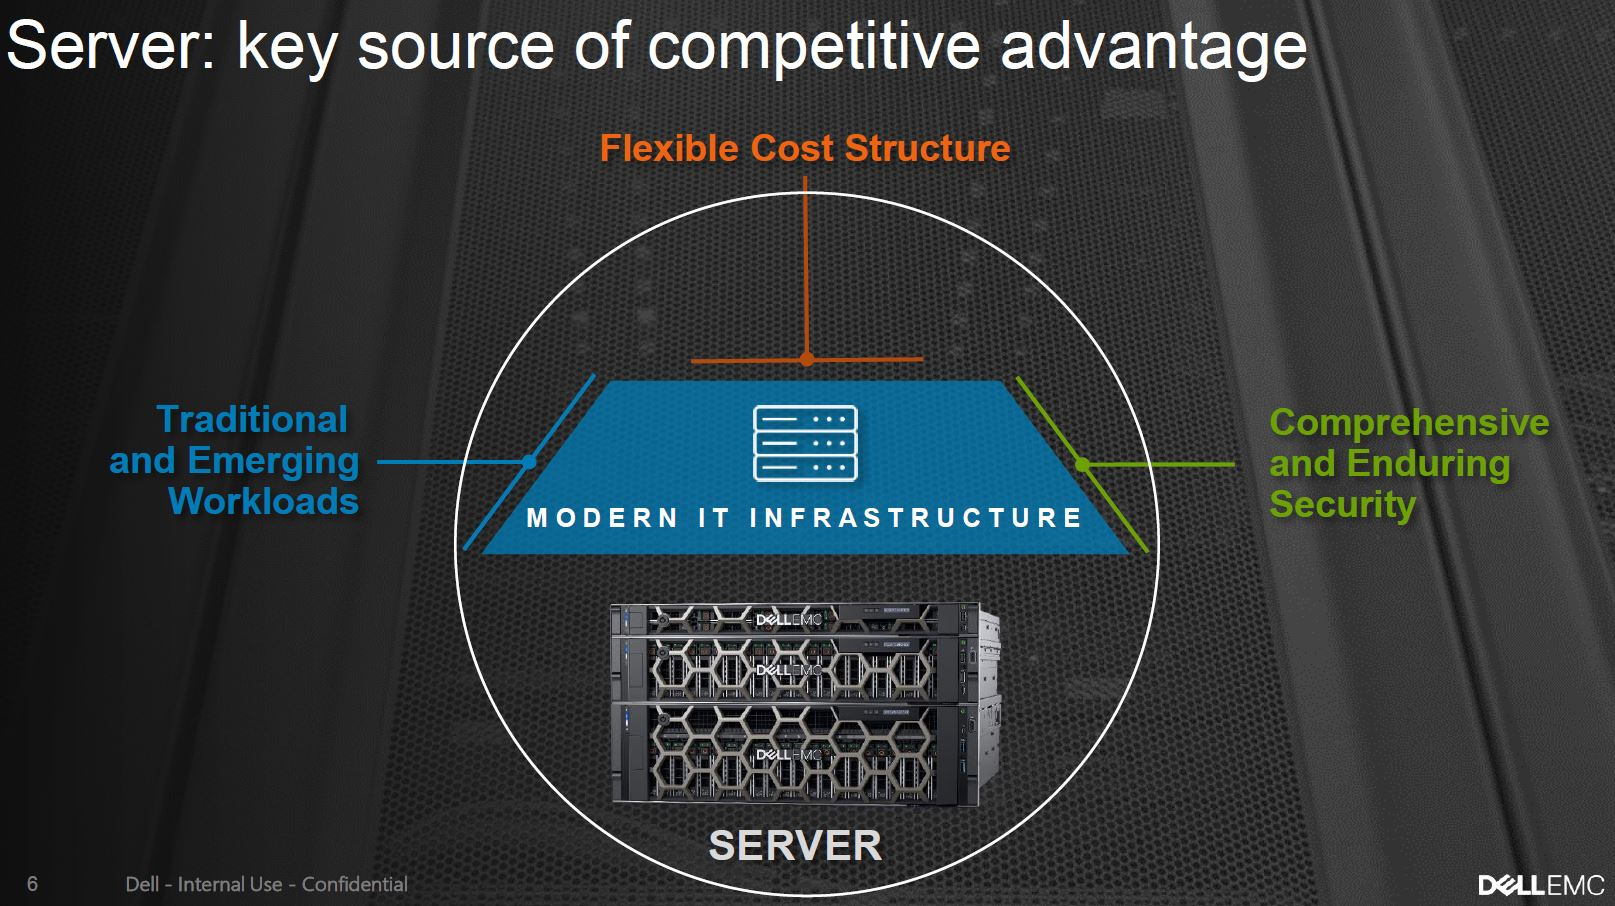 Dell EMC Server Competitive Advantage